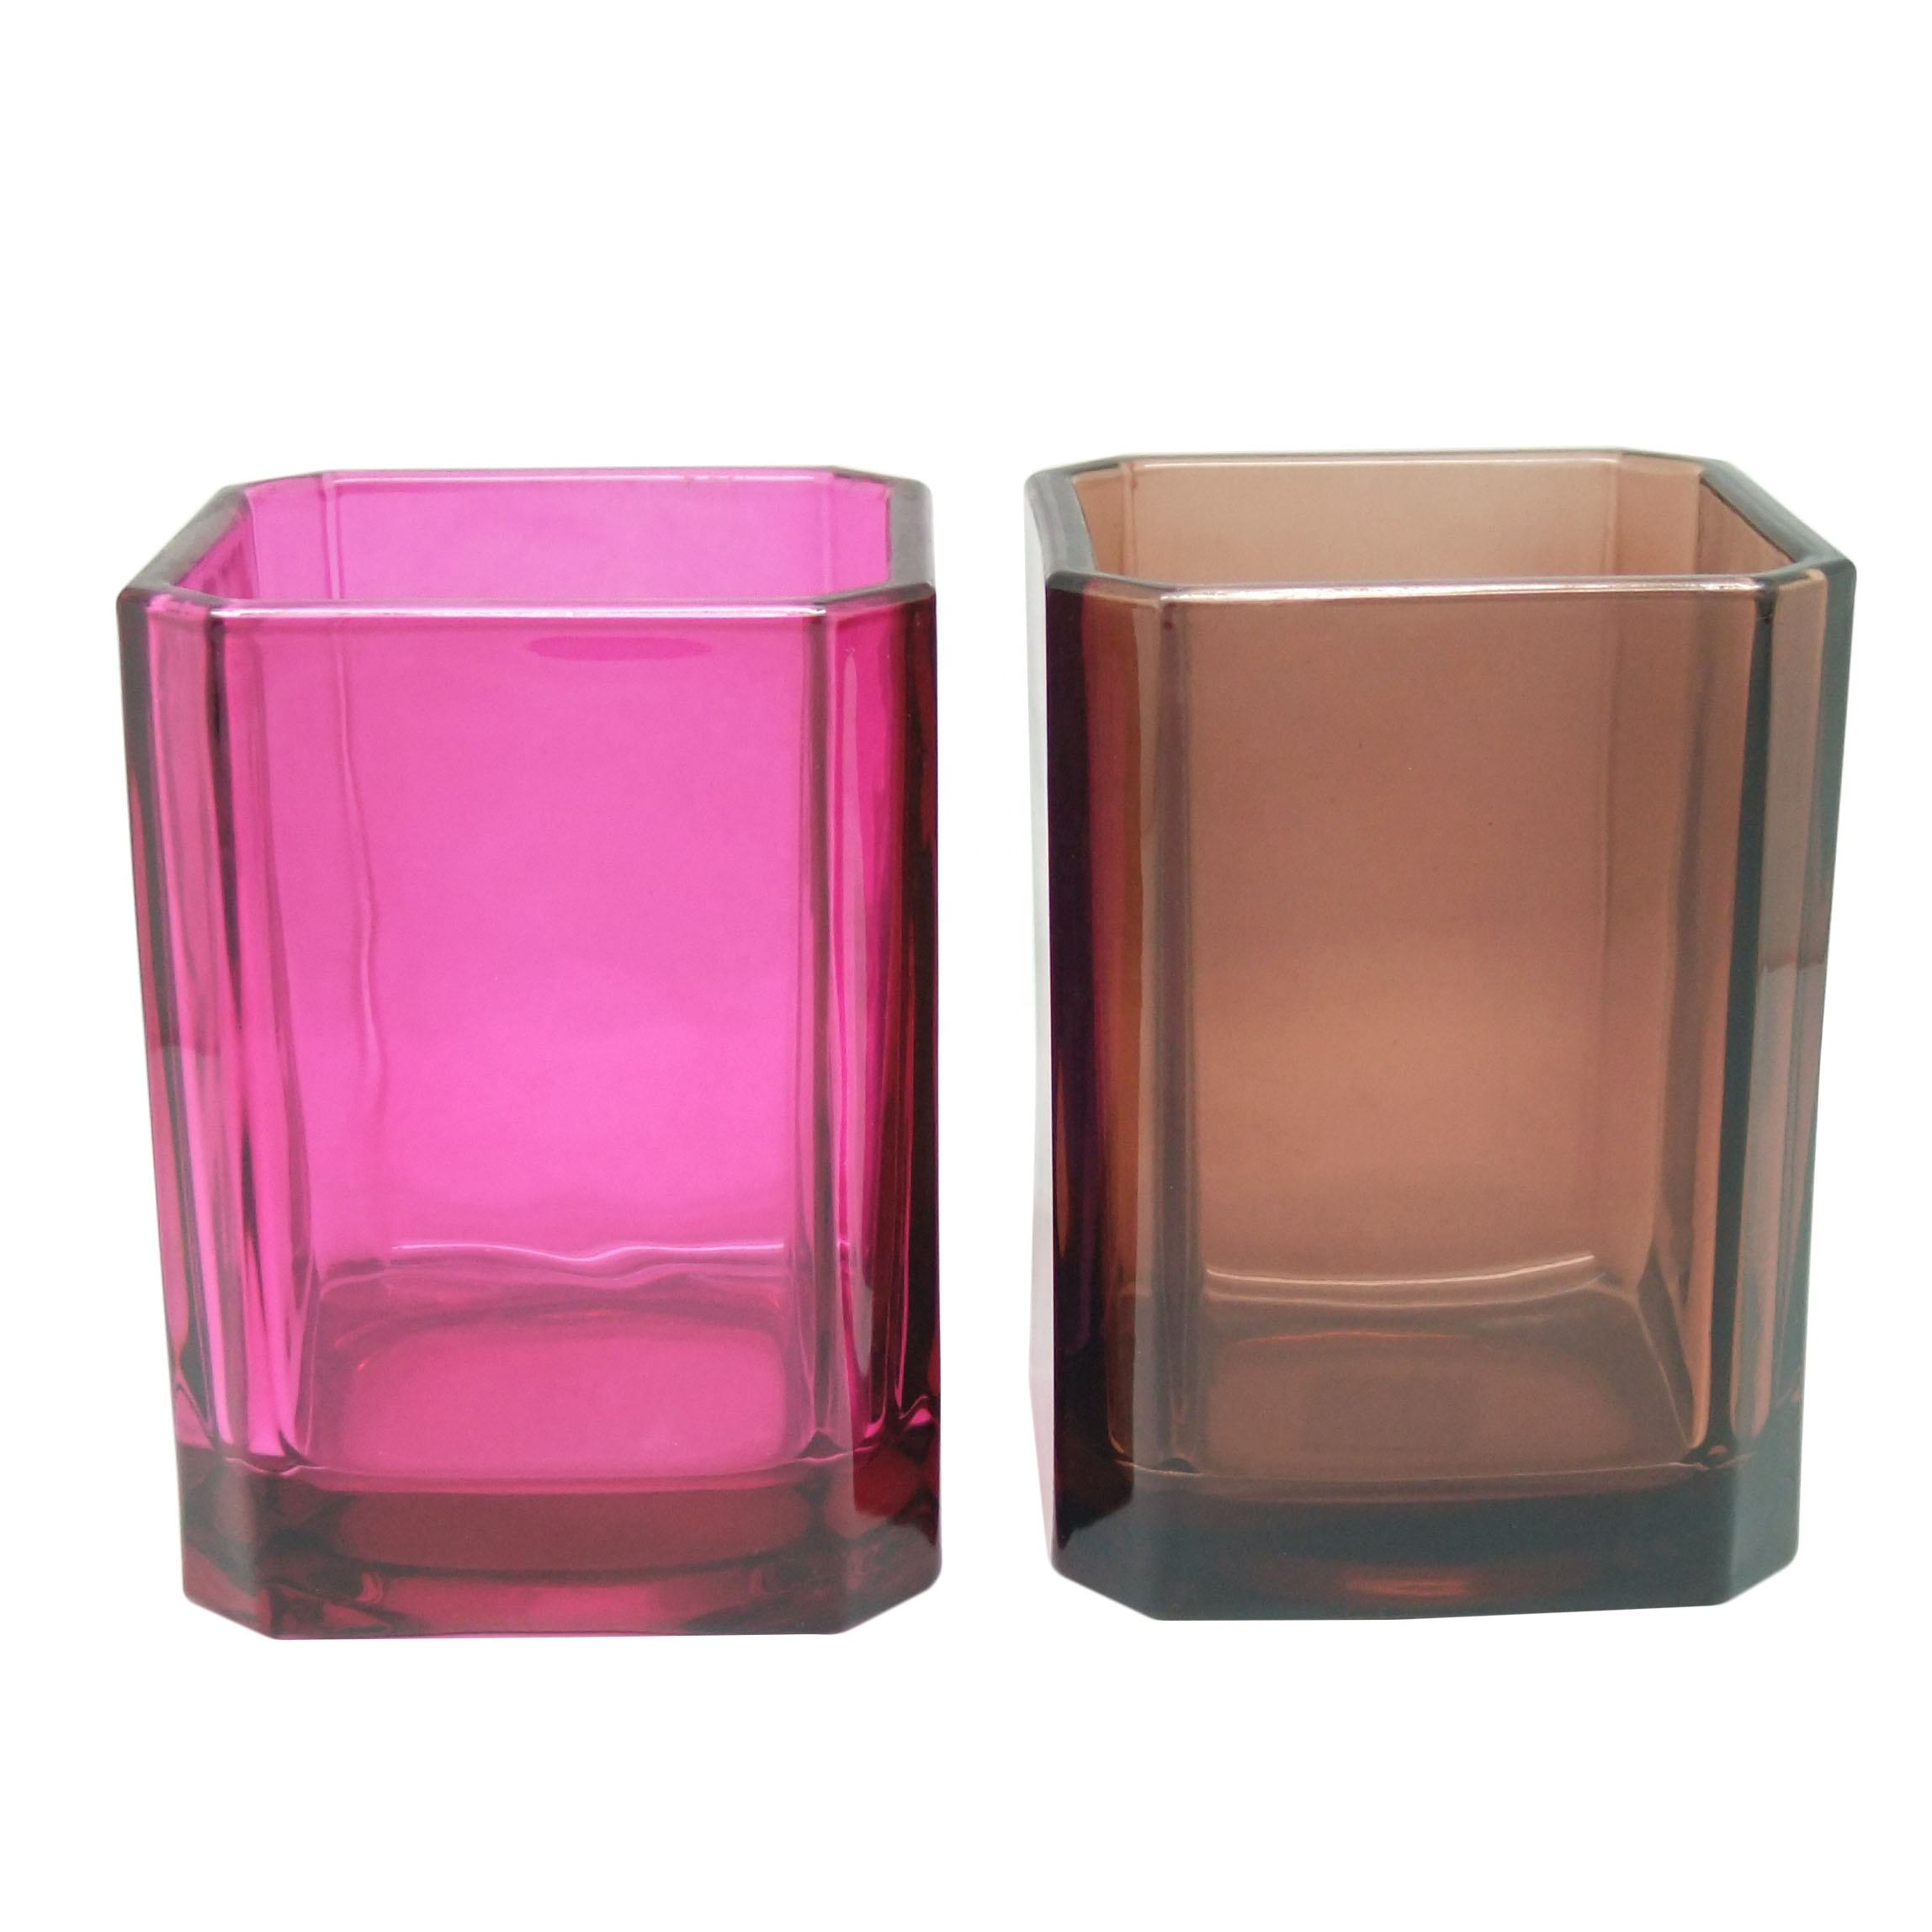 square amber candle jars with lids glass candle luxury custom apothecary candle holders wedding cube jars wholesale Haodexin